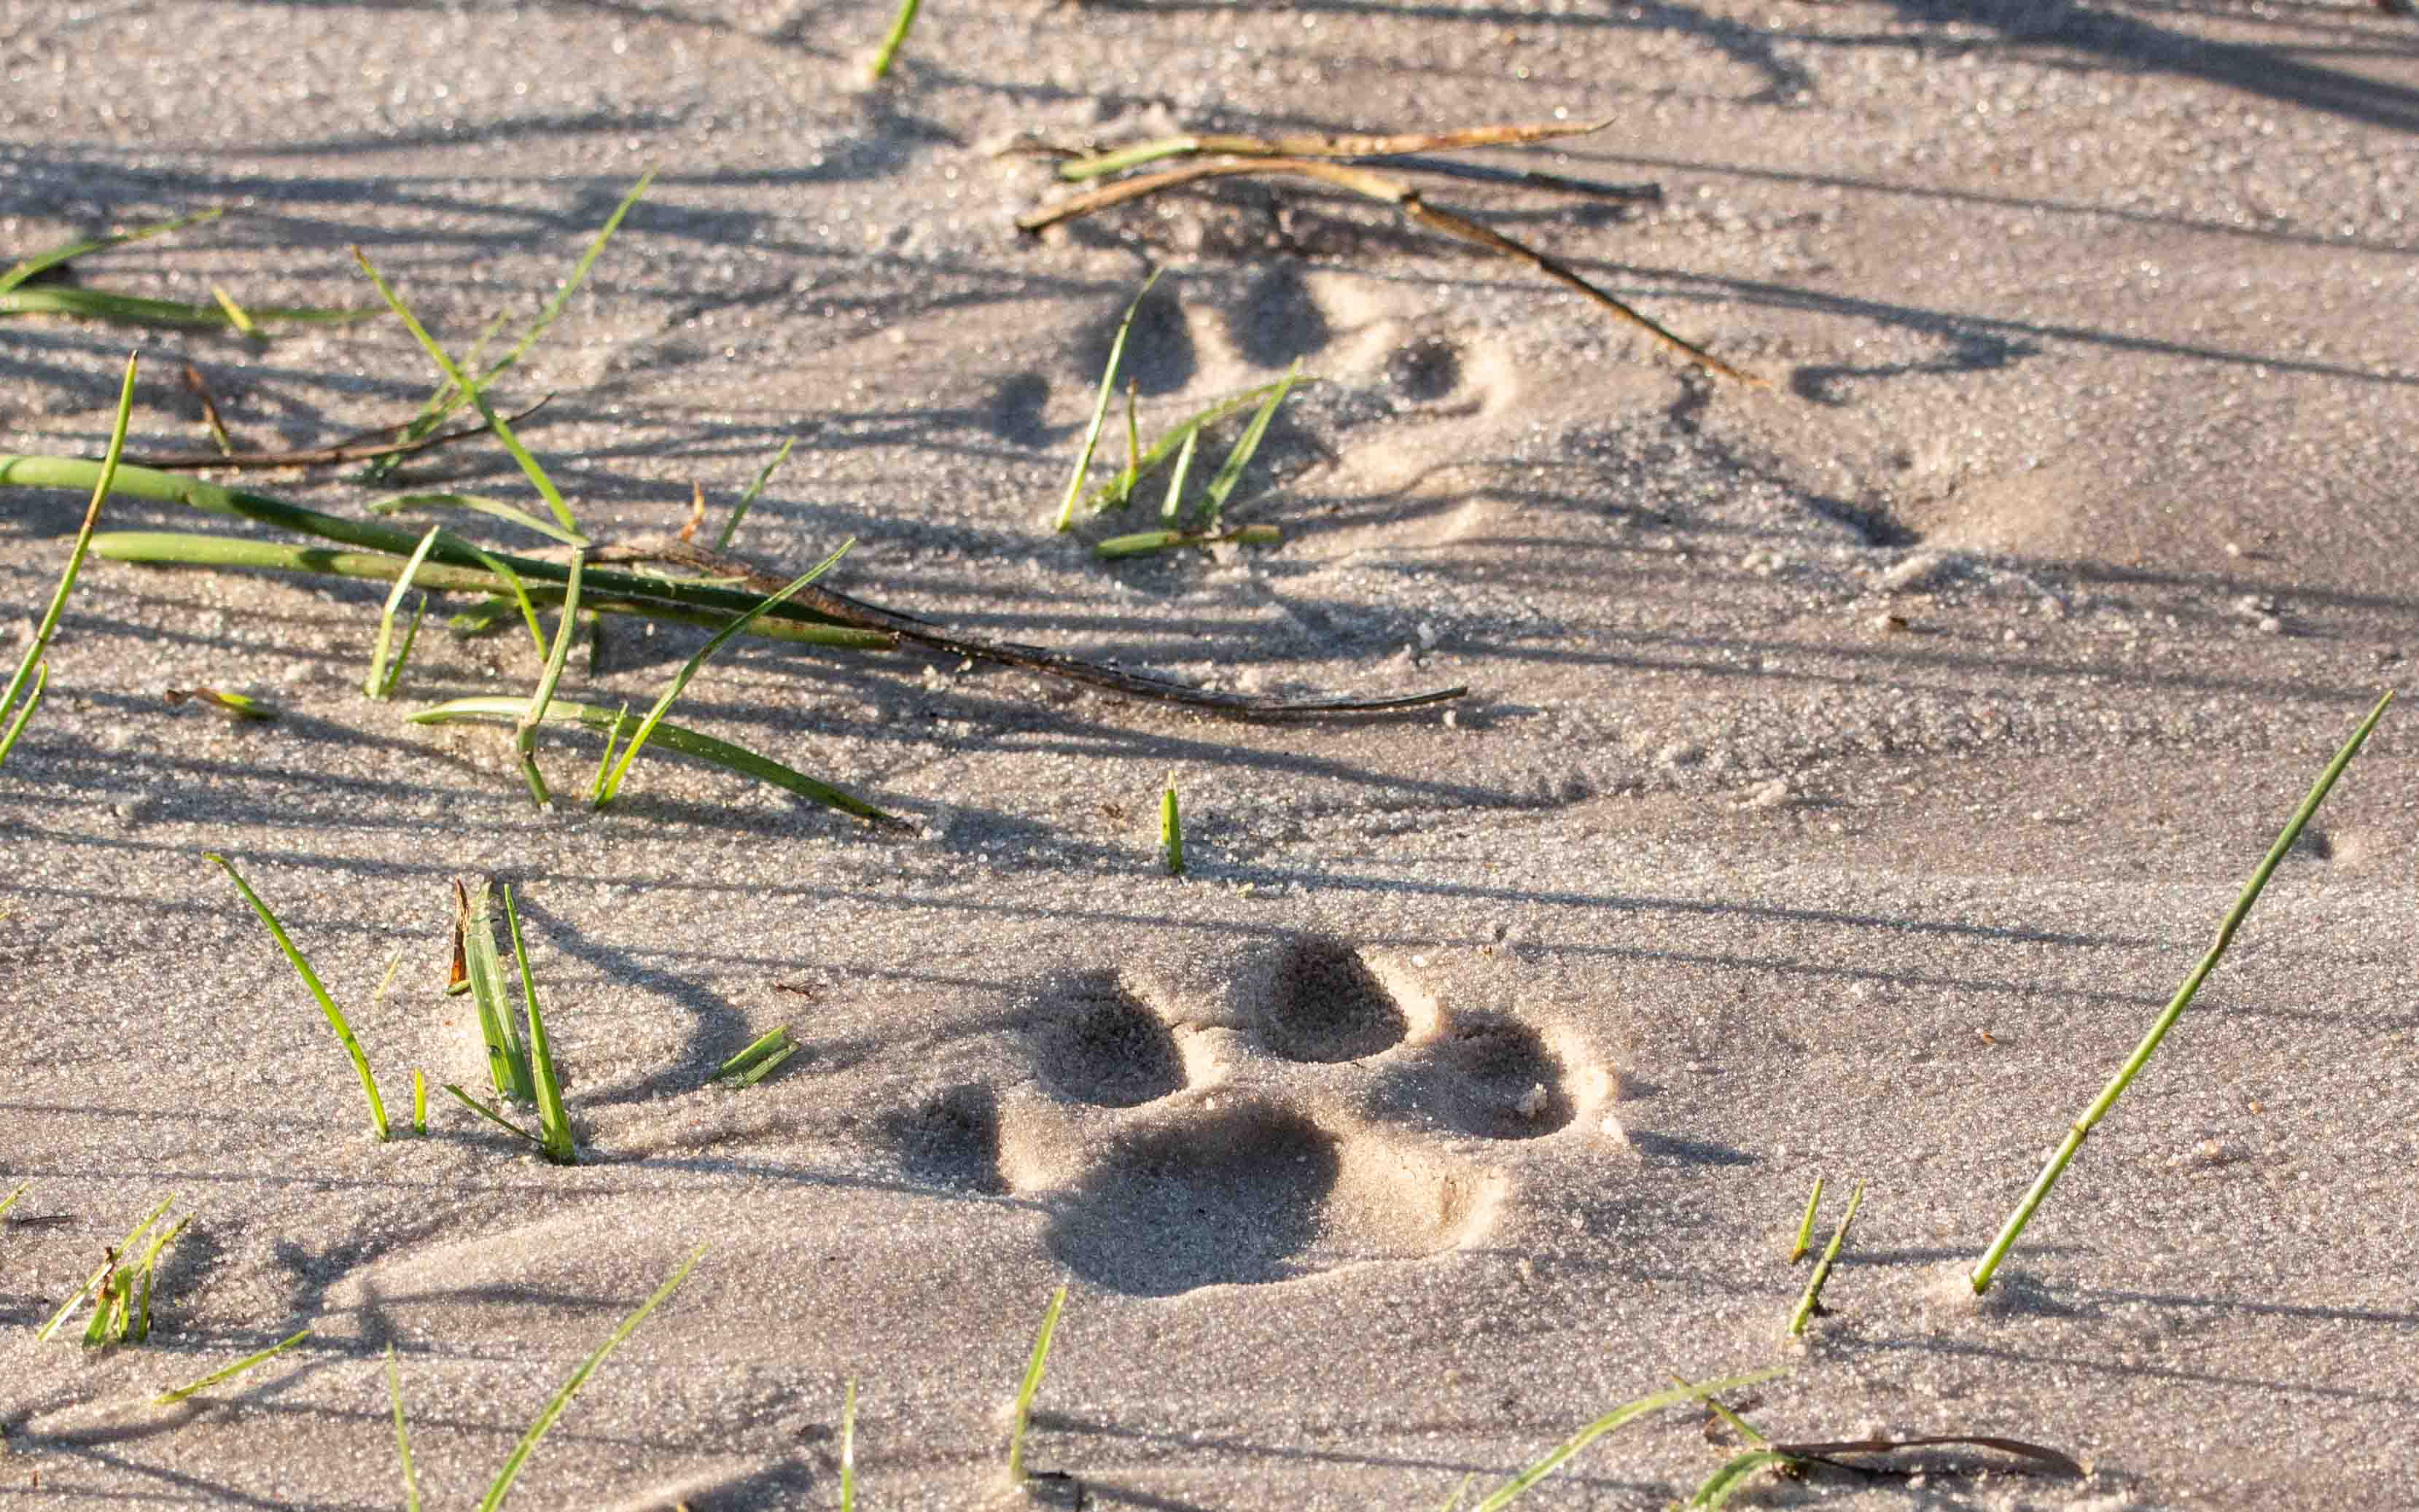 Leopard tracks found in the deep sand of the Khwai river bed in Botswana.